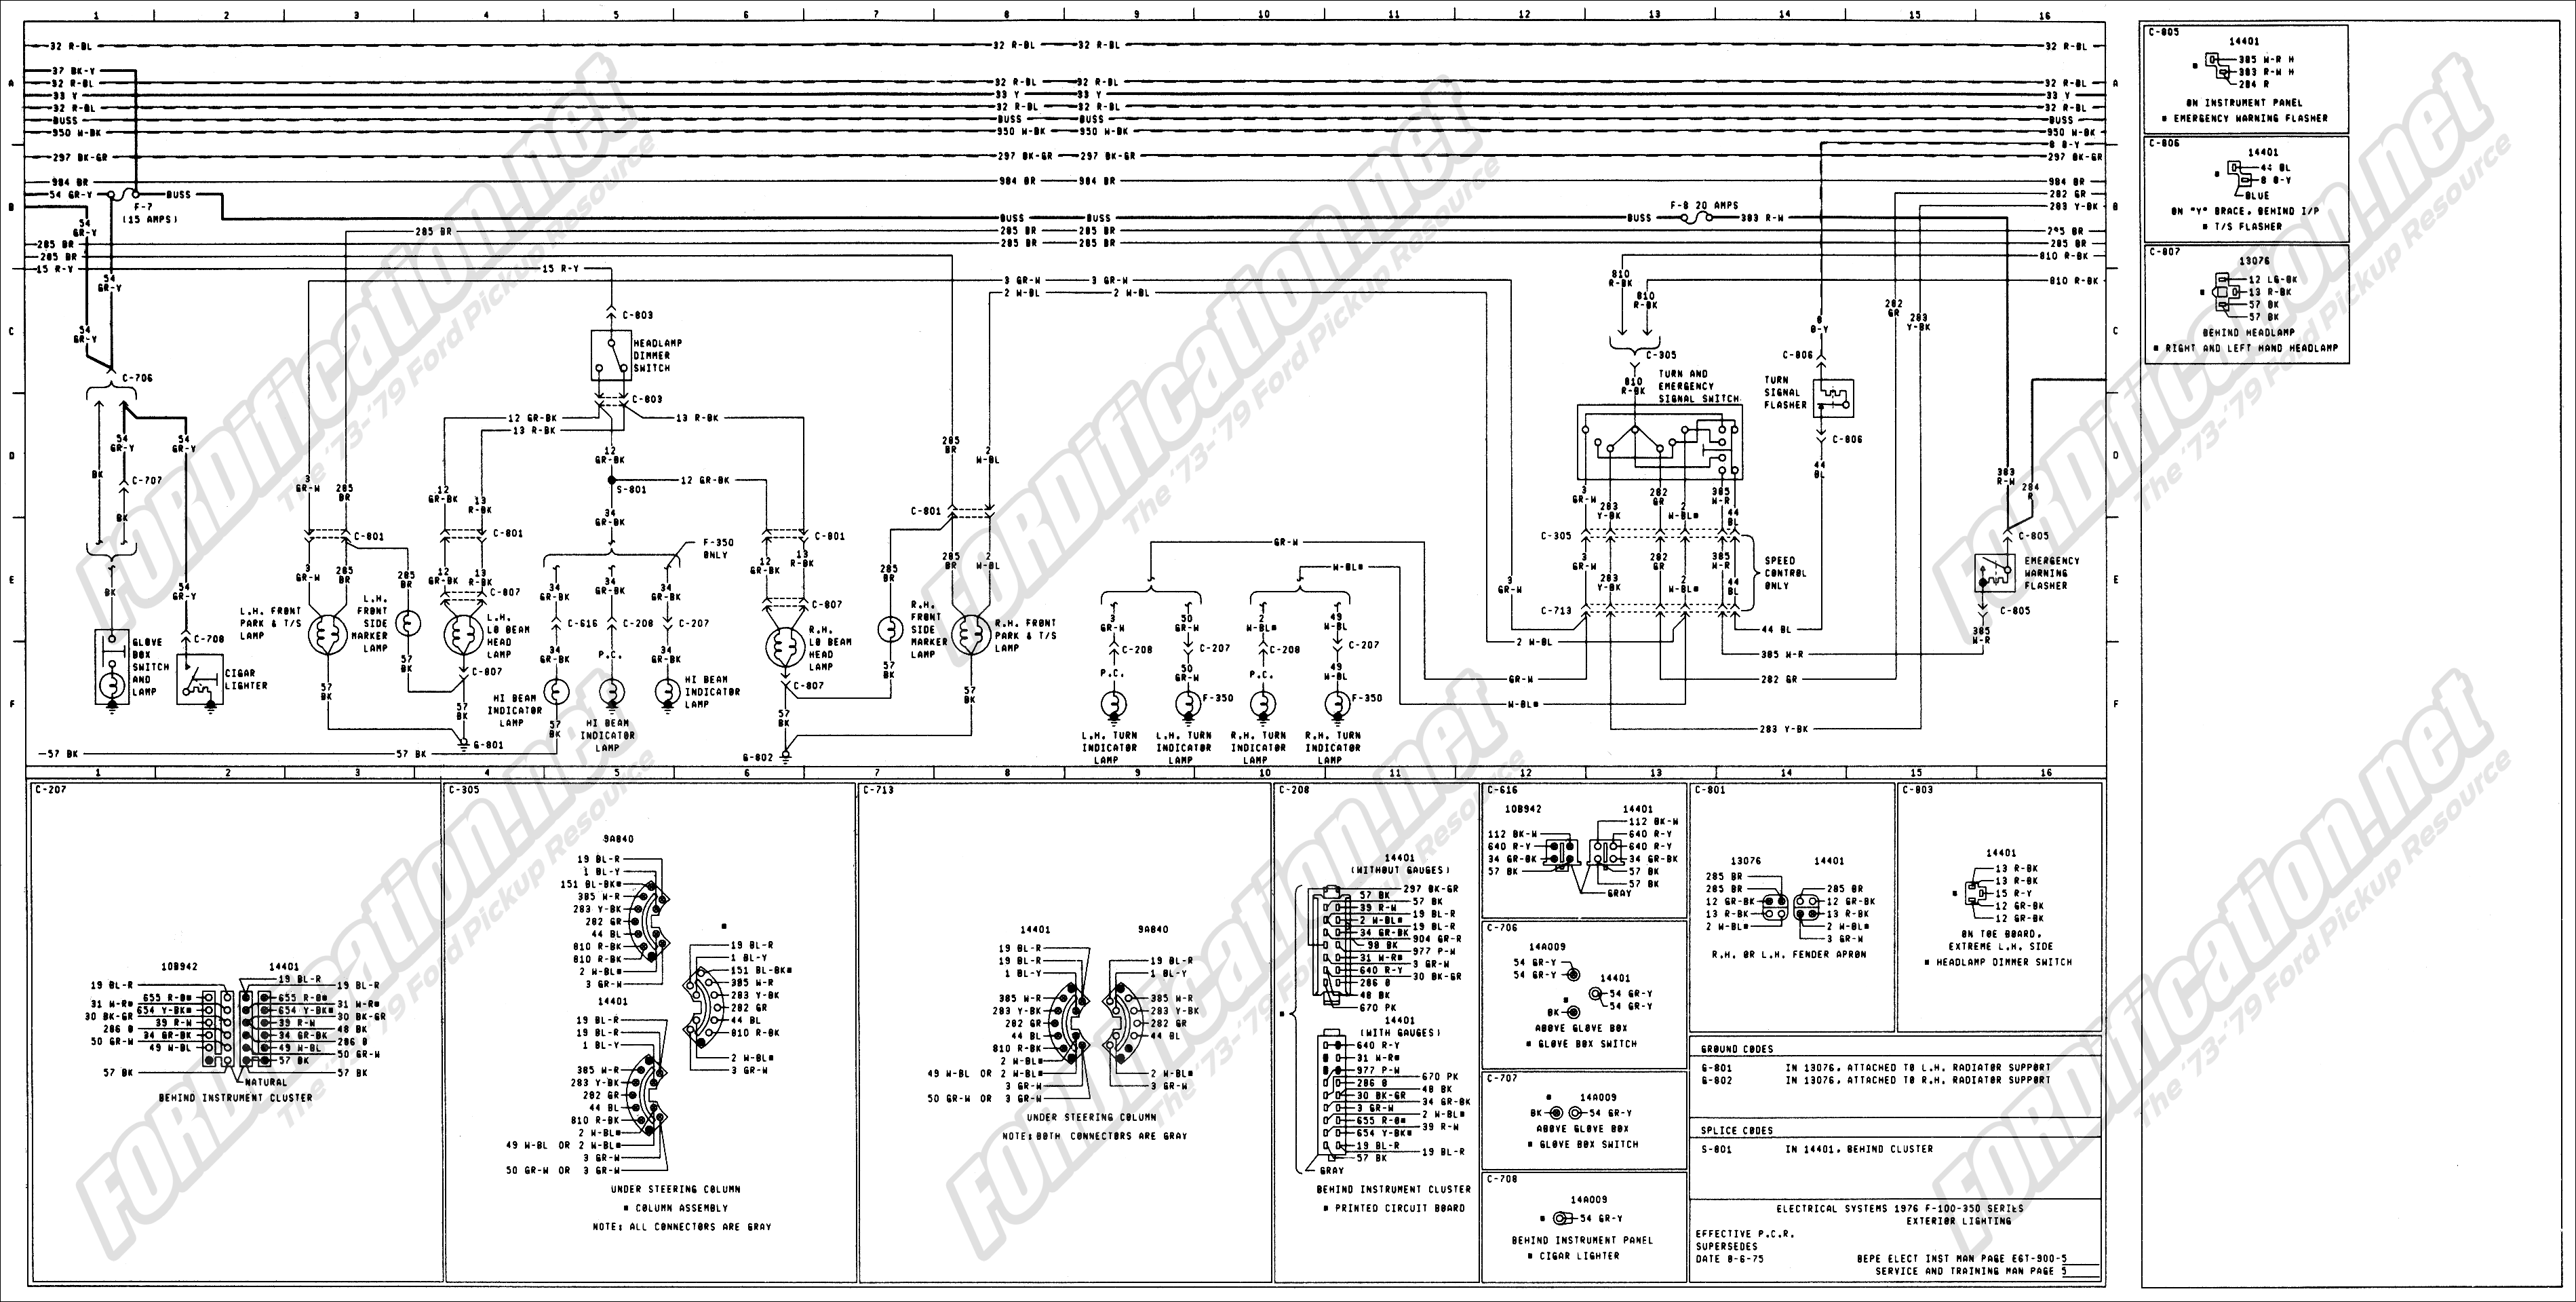 1974 Ford Taillight Wiring Diagram Electricity Basics 101 1973 C10 Harness 1979 Truck Diagrams Schematics Fordification Net Rh Tail Light